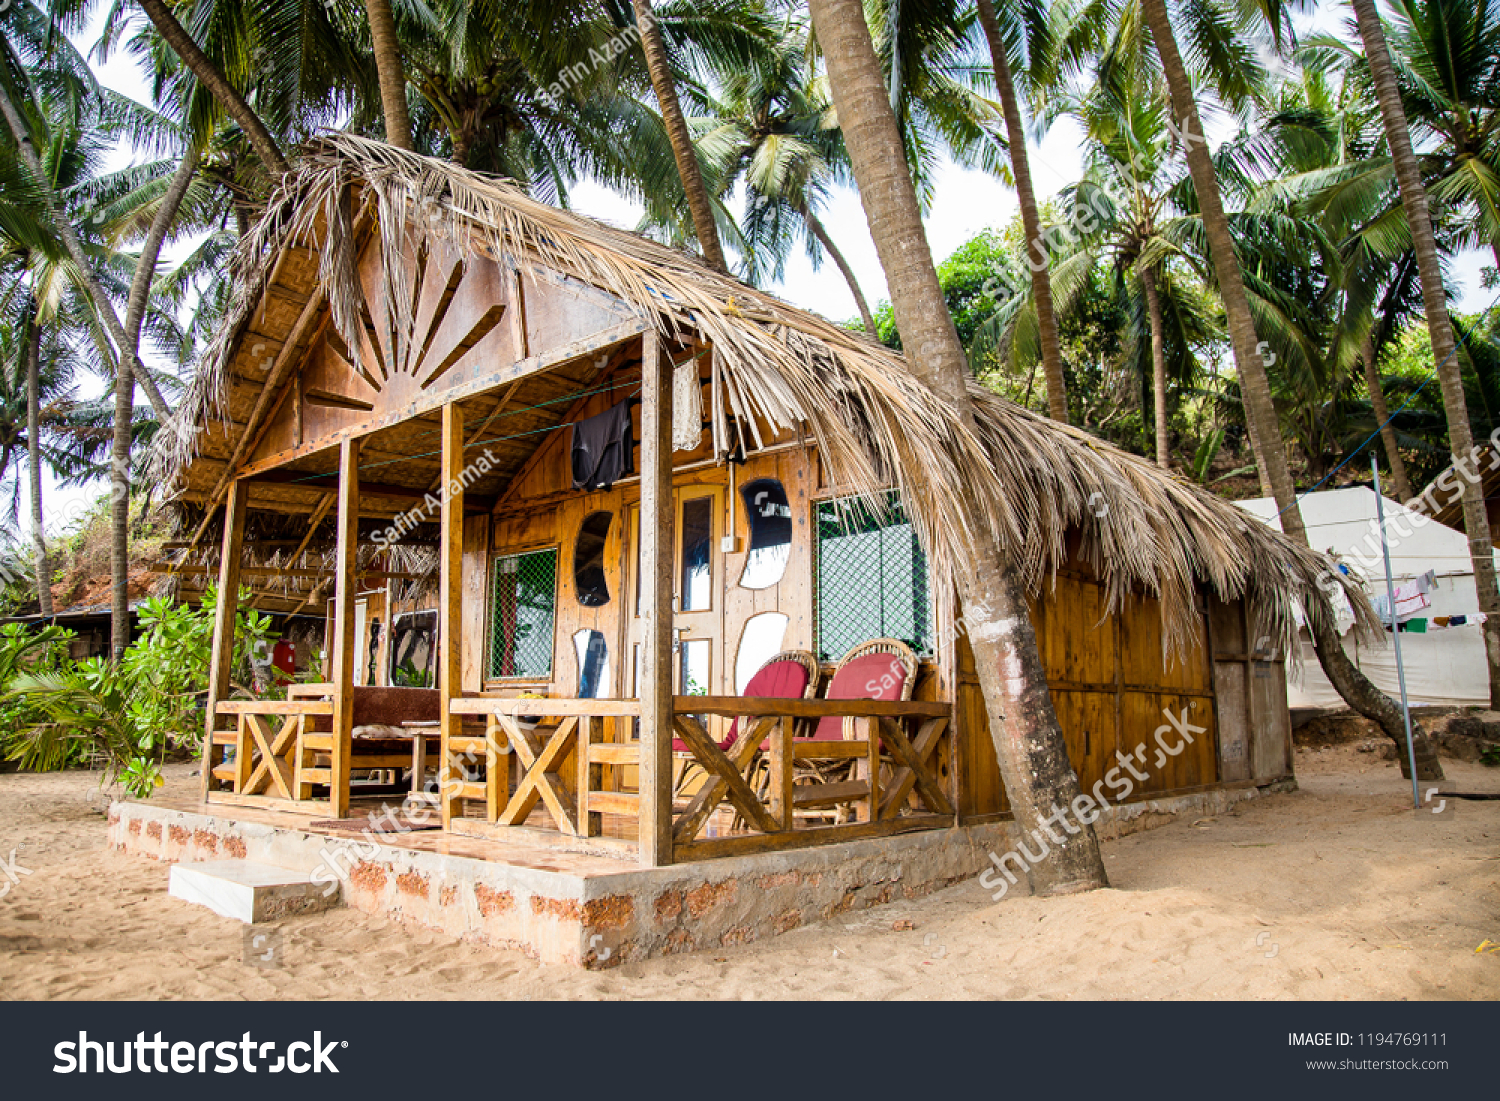 bungalow palm grove stock photo (edit now) 1194769111 - shutterstock